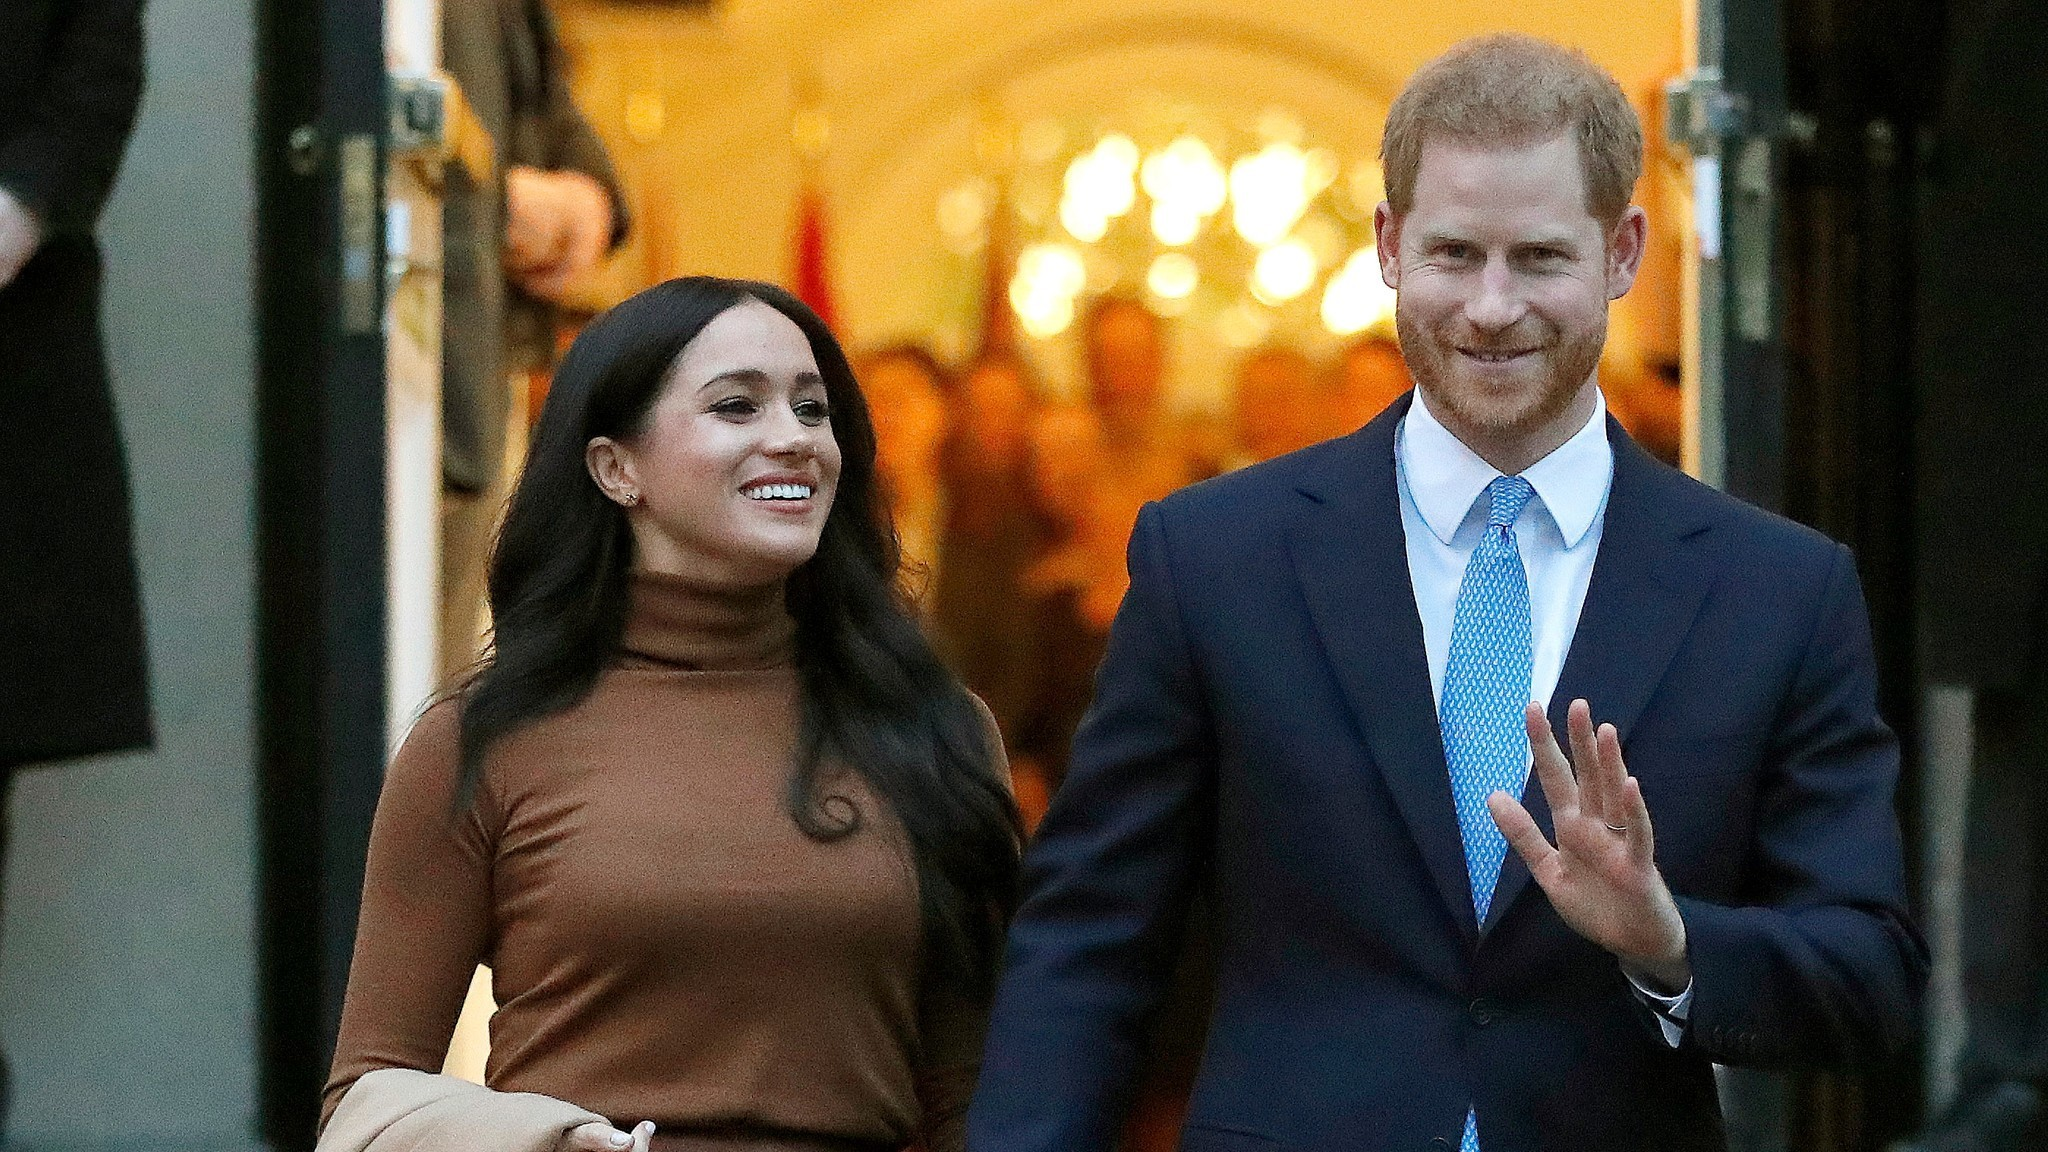 Canadians do not want their taxes paying for Prince Harry and Duchess Meghan's security